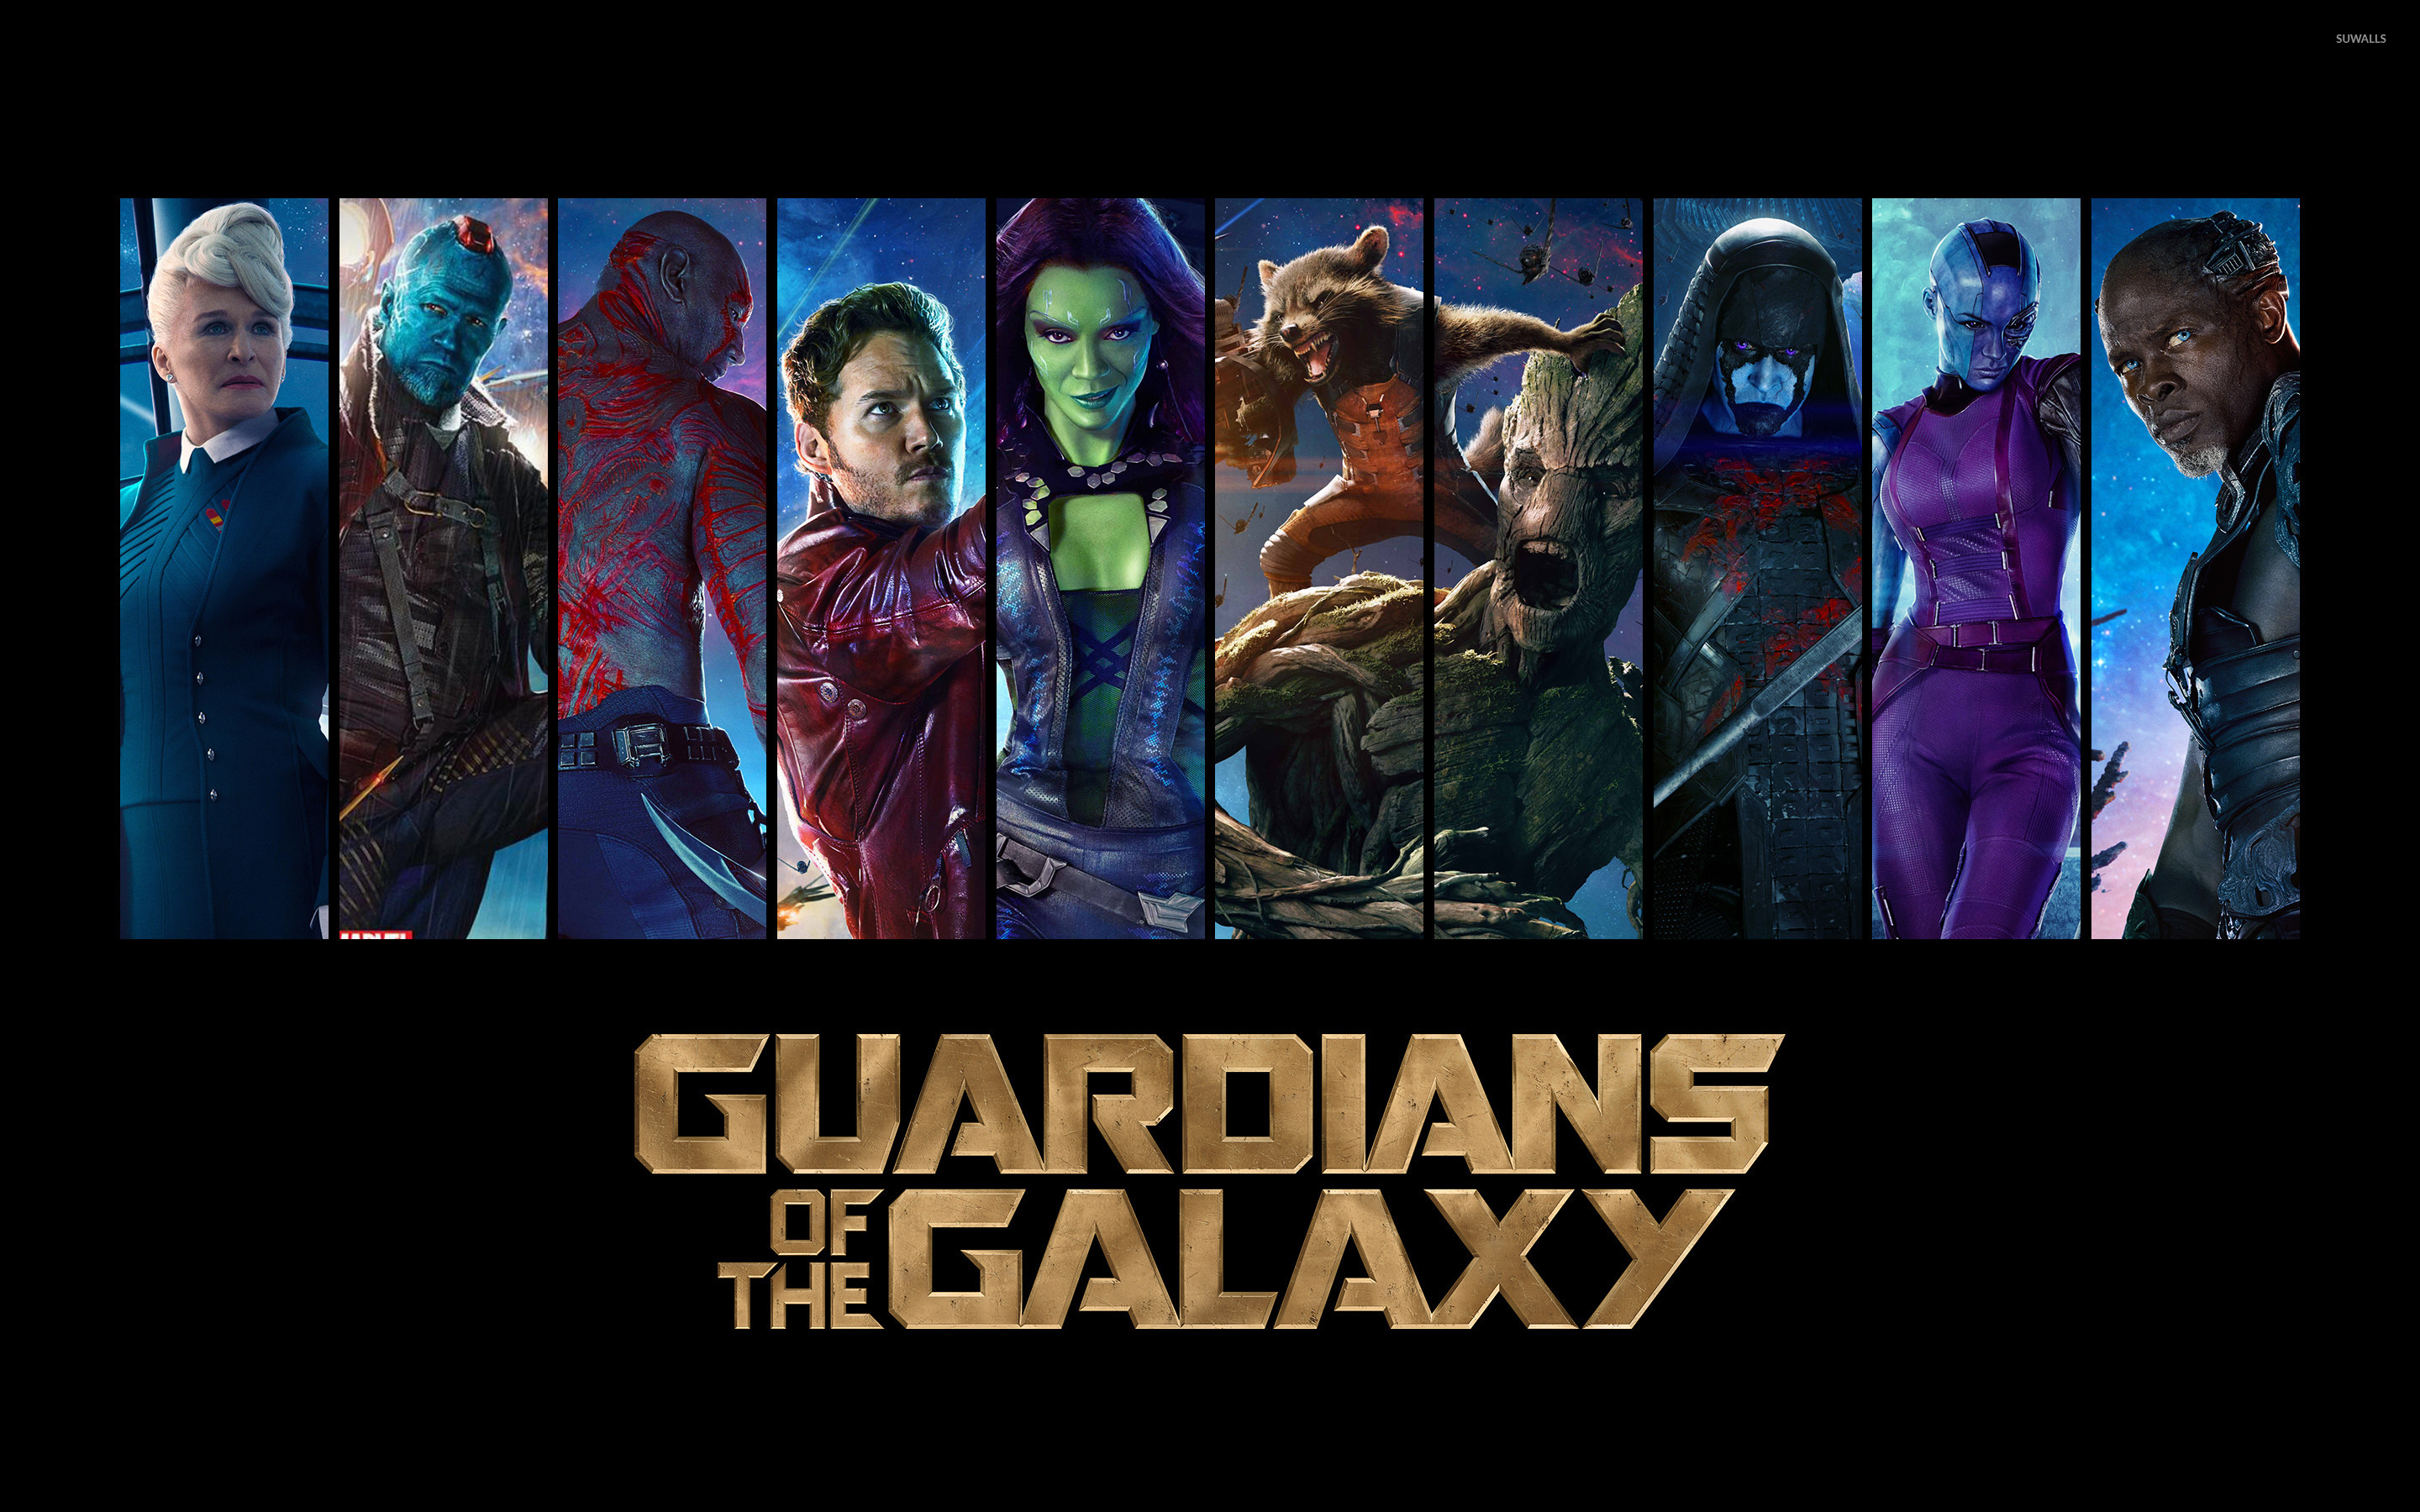 Great Wallpaper Movie Guardians The Galaxy - guardians-of-the-galaxy-32272-2880x1800  Trends_296155.jpg